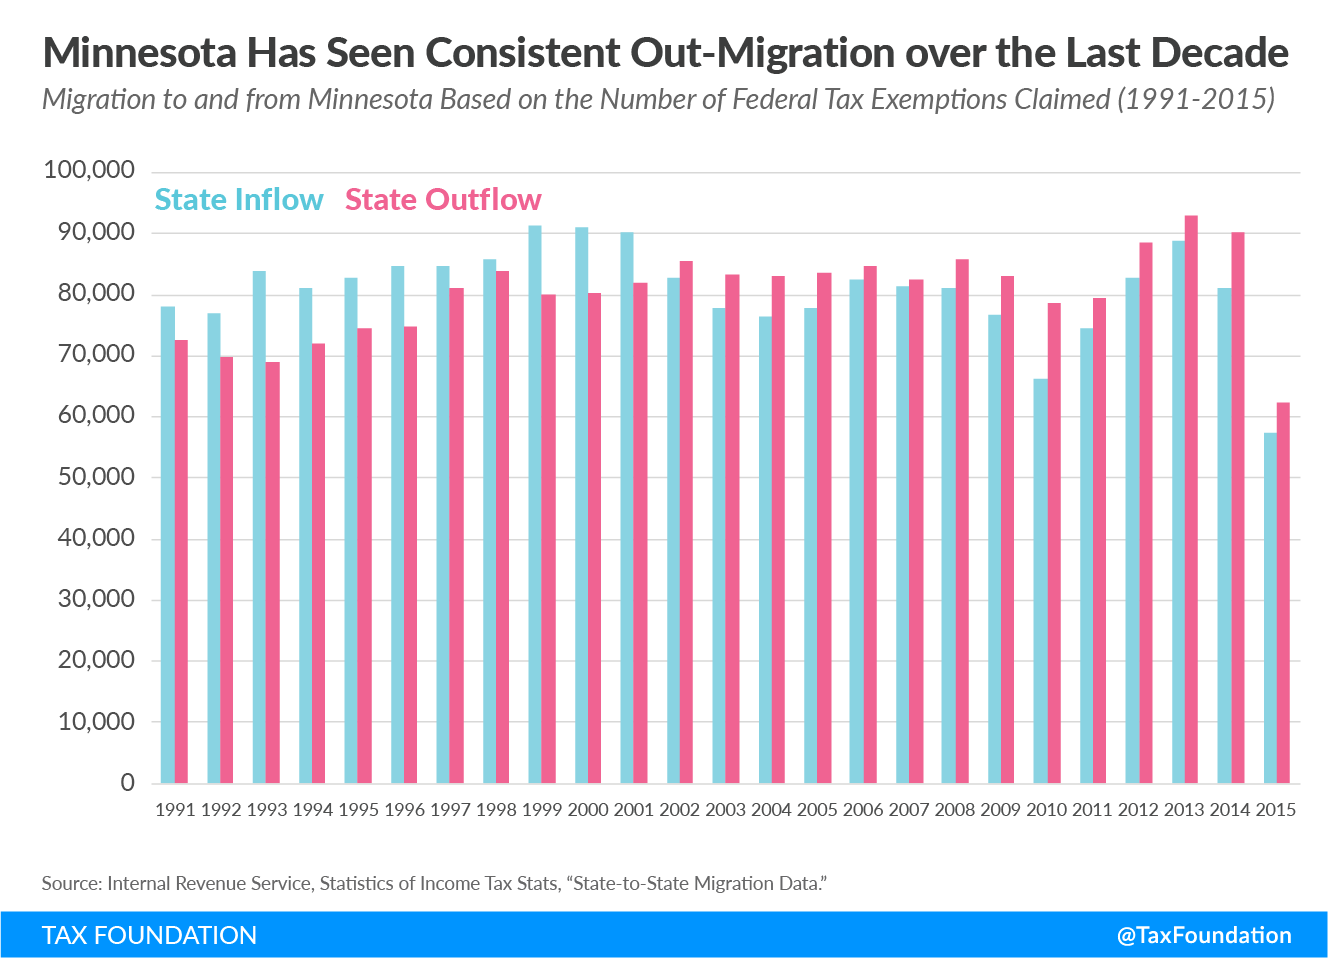 Minnesota Has Seen Consistent Out-Migration over the Last Decade